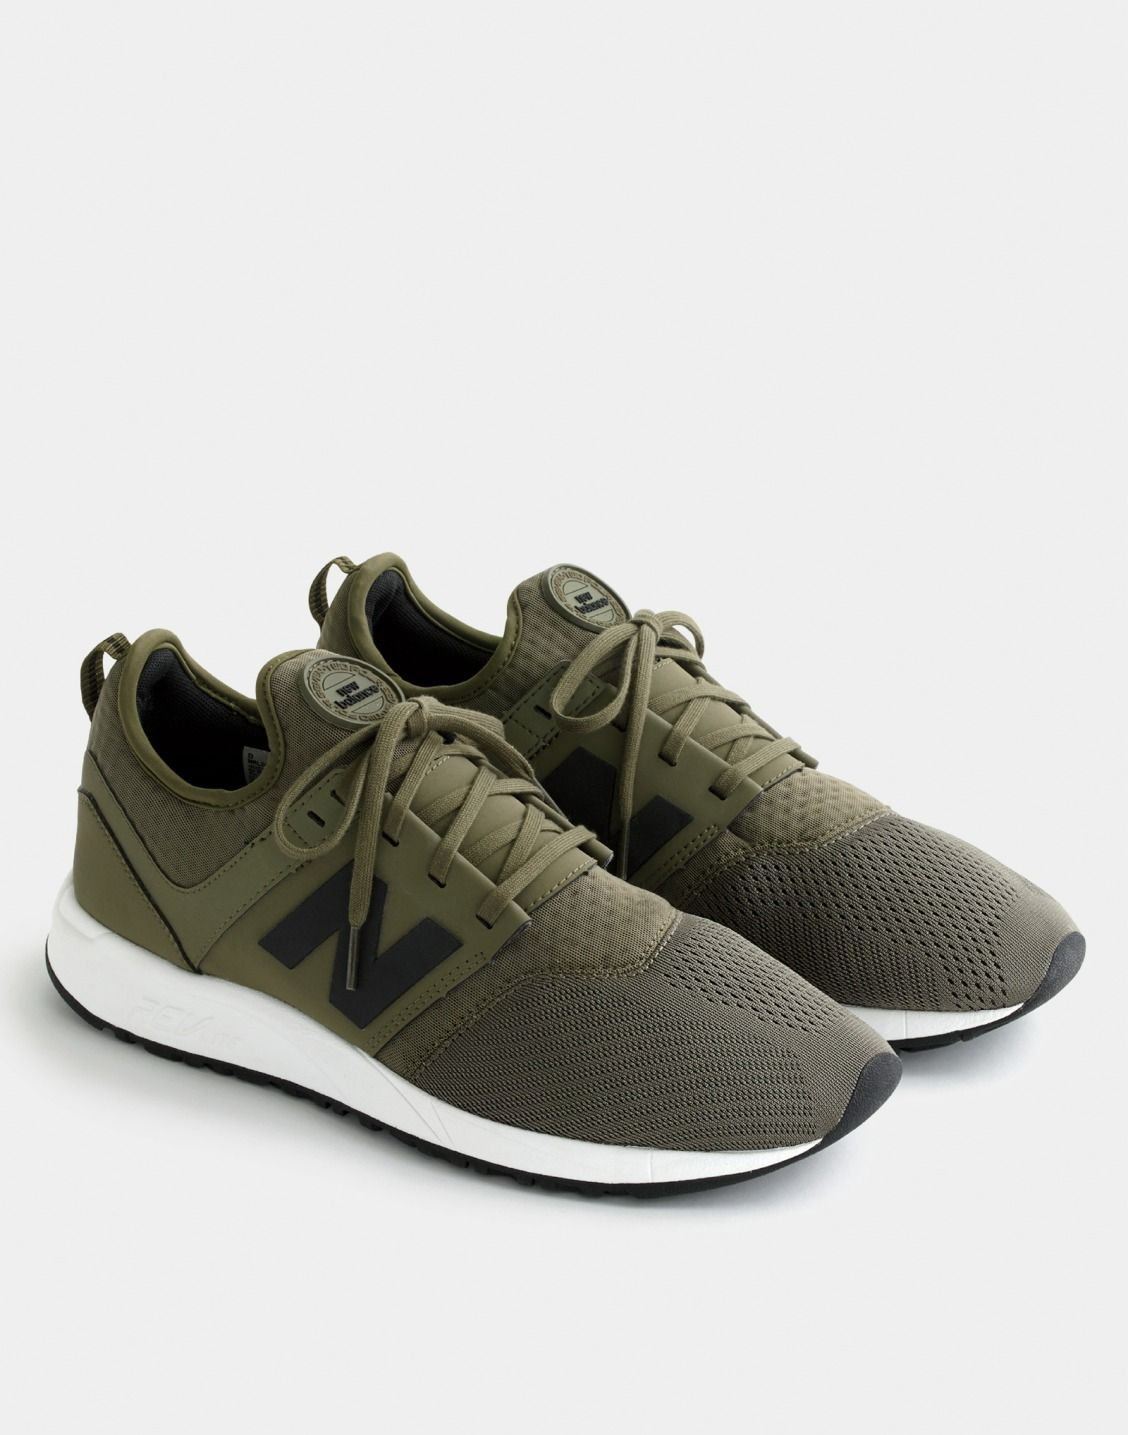 J.Crew men's New Balance® 247 Sport sneakers in olive